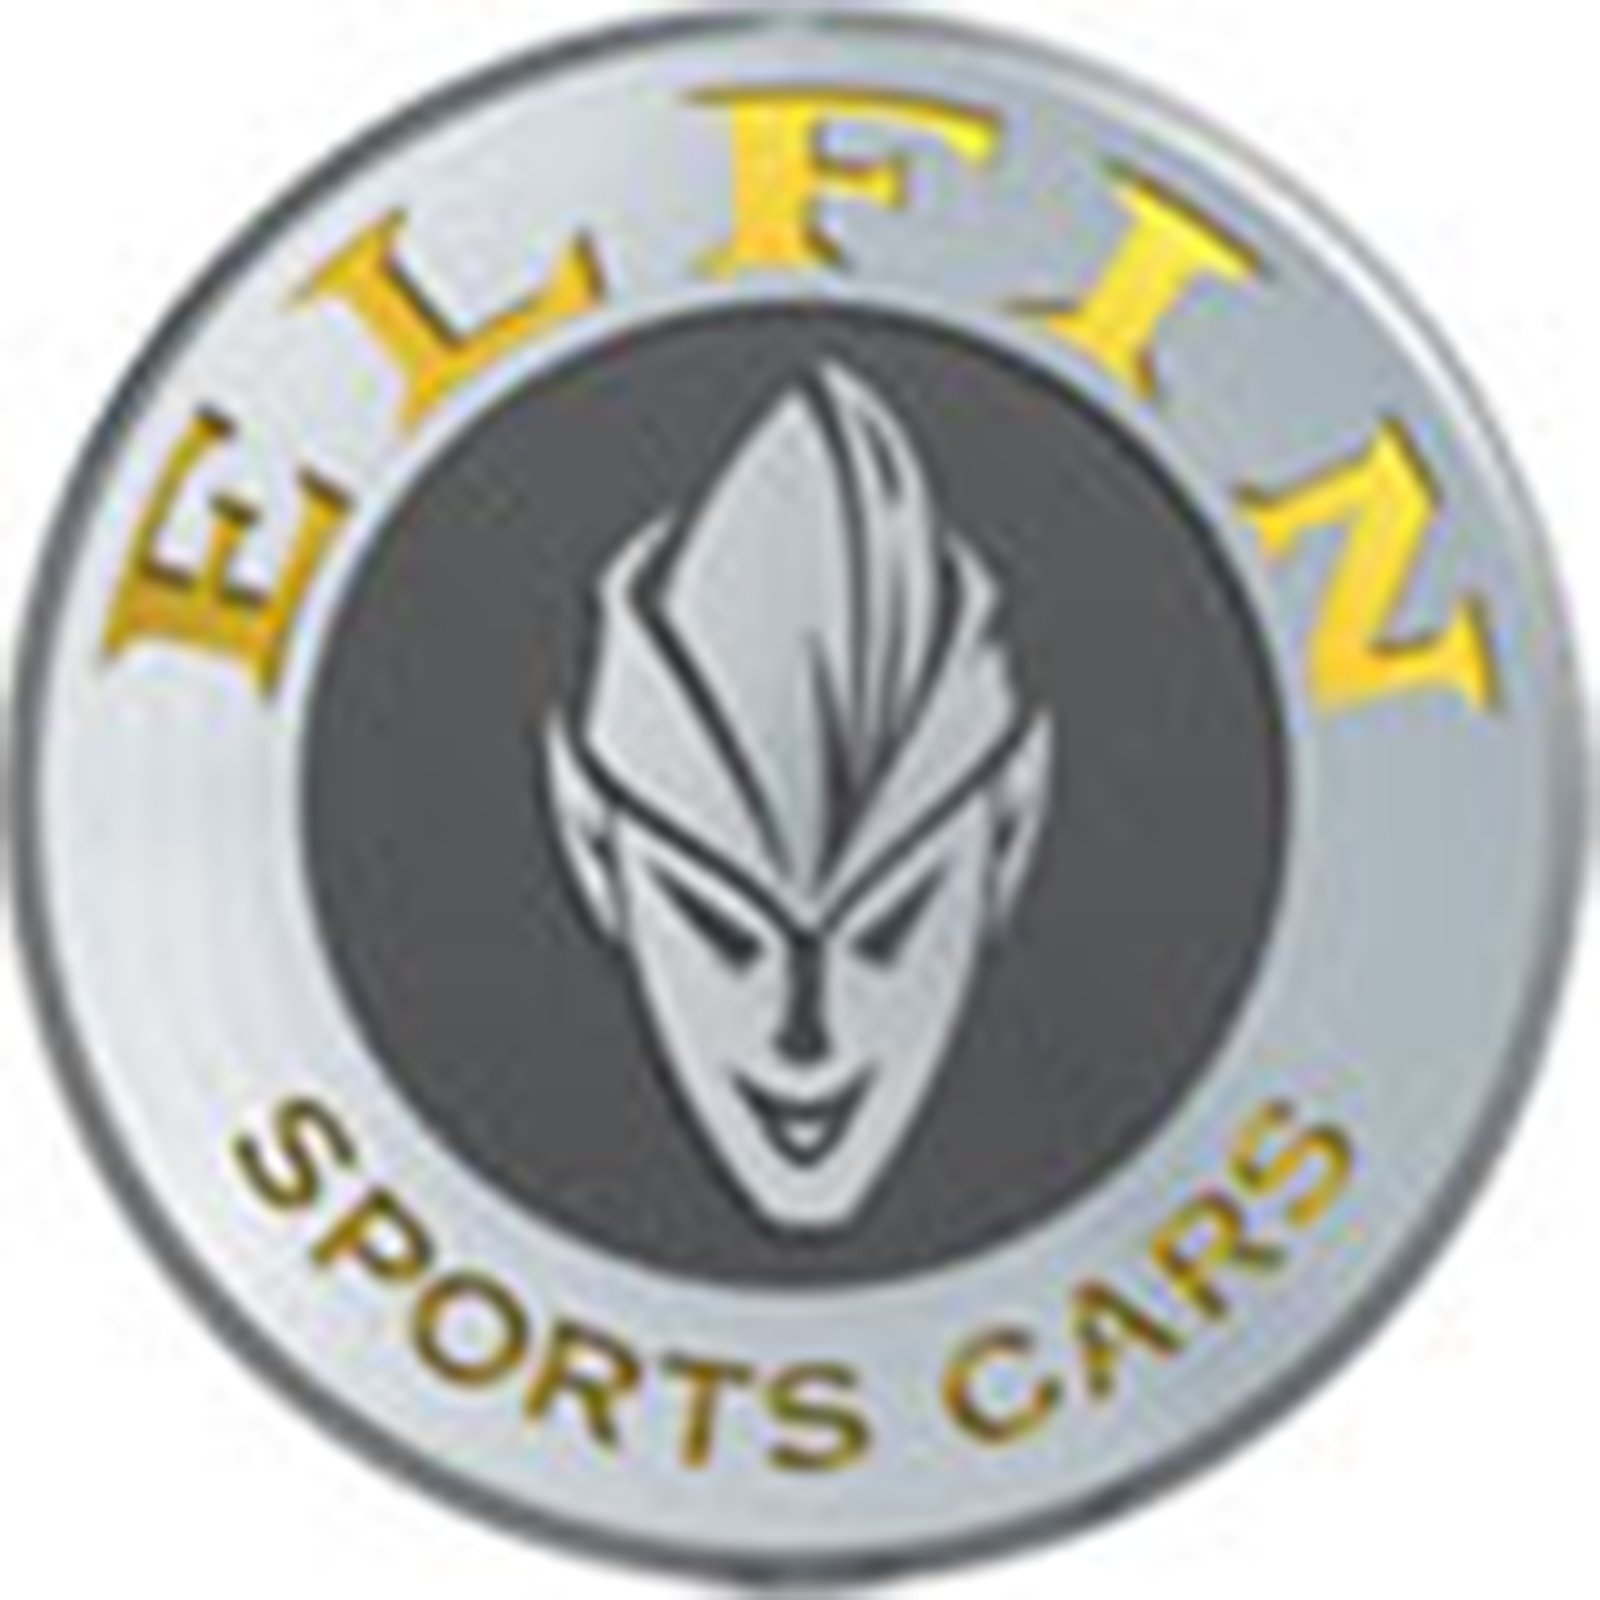 New Automotive Database Elfin Sports Cars On This Month